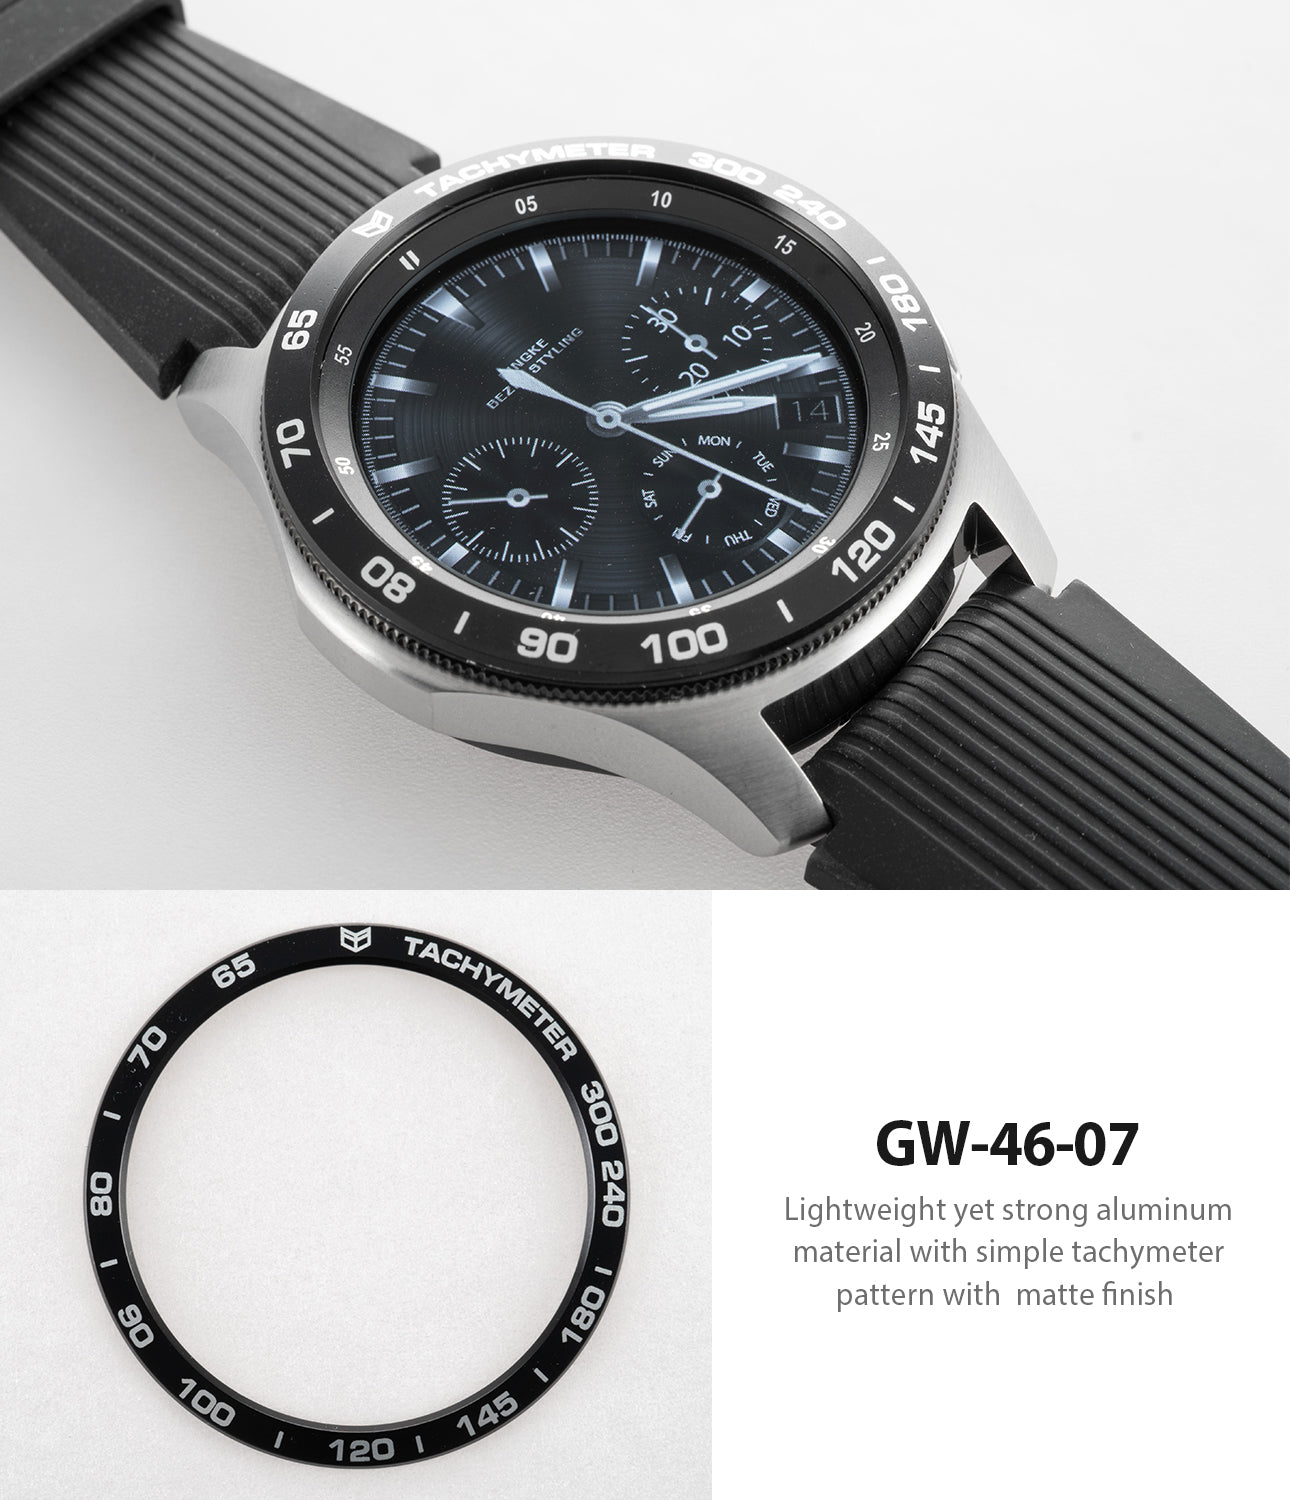 lightweight yet strong aluminum material with simple tachymeter pattern with matte finish